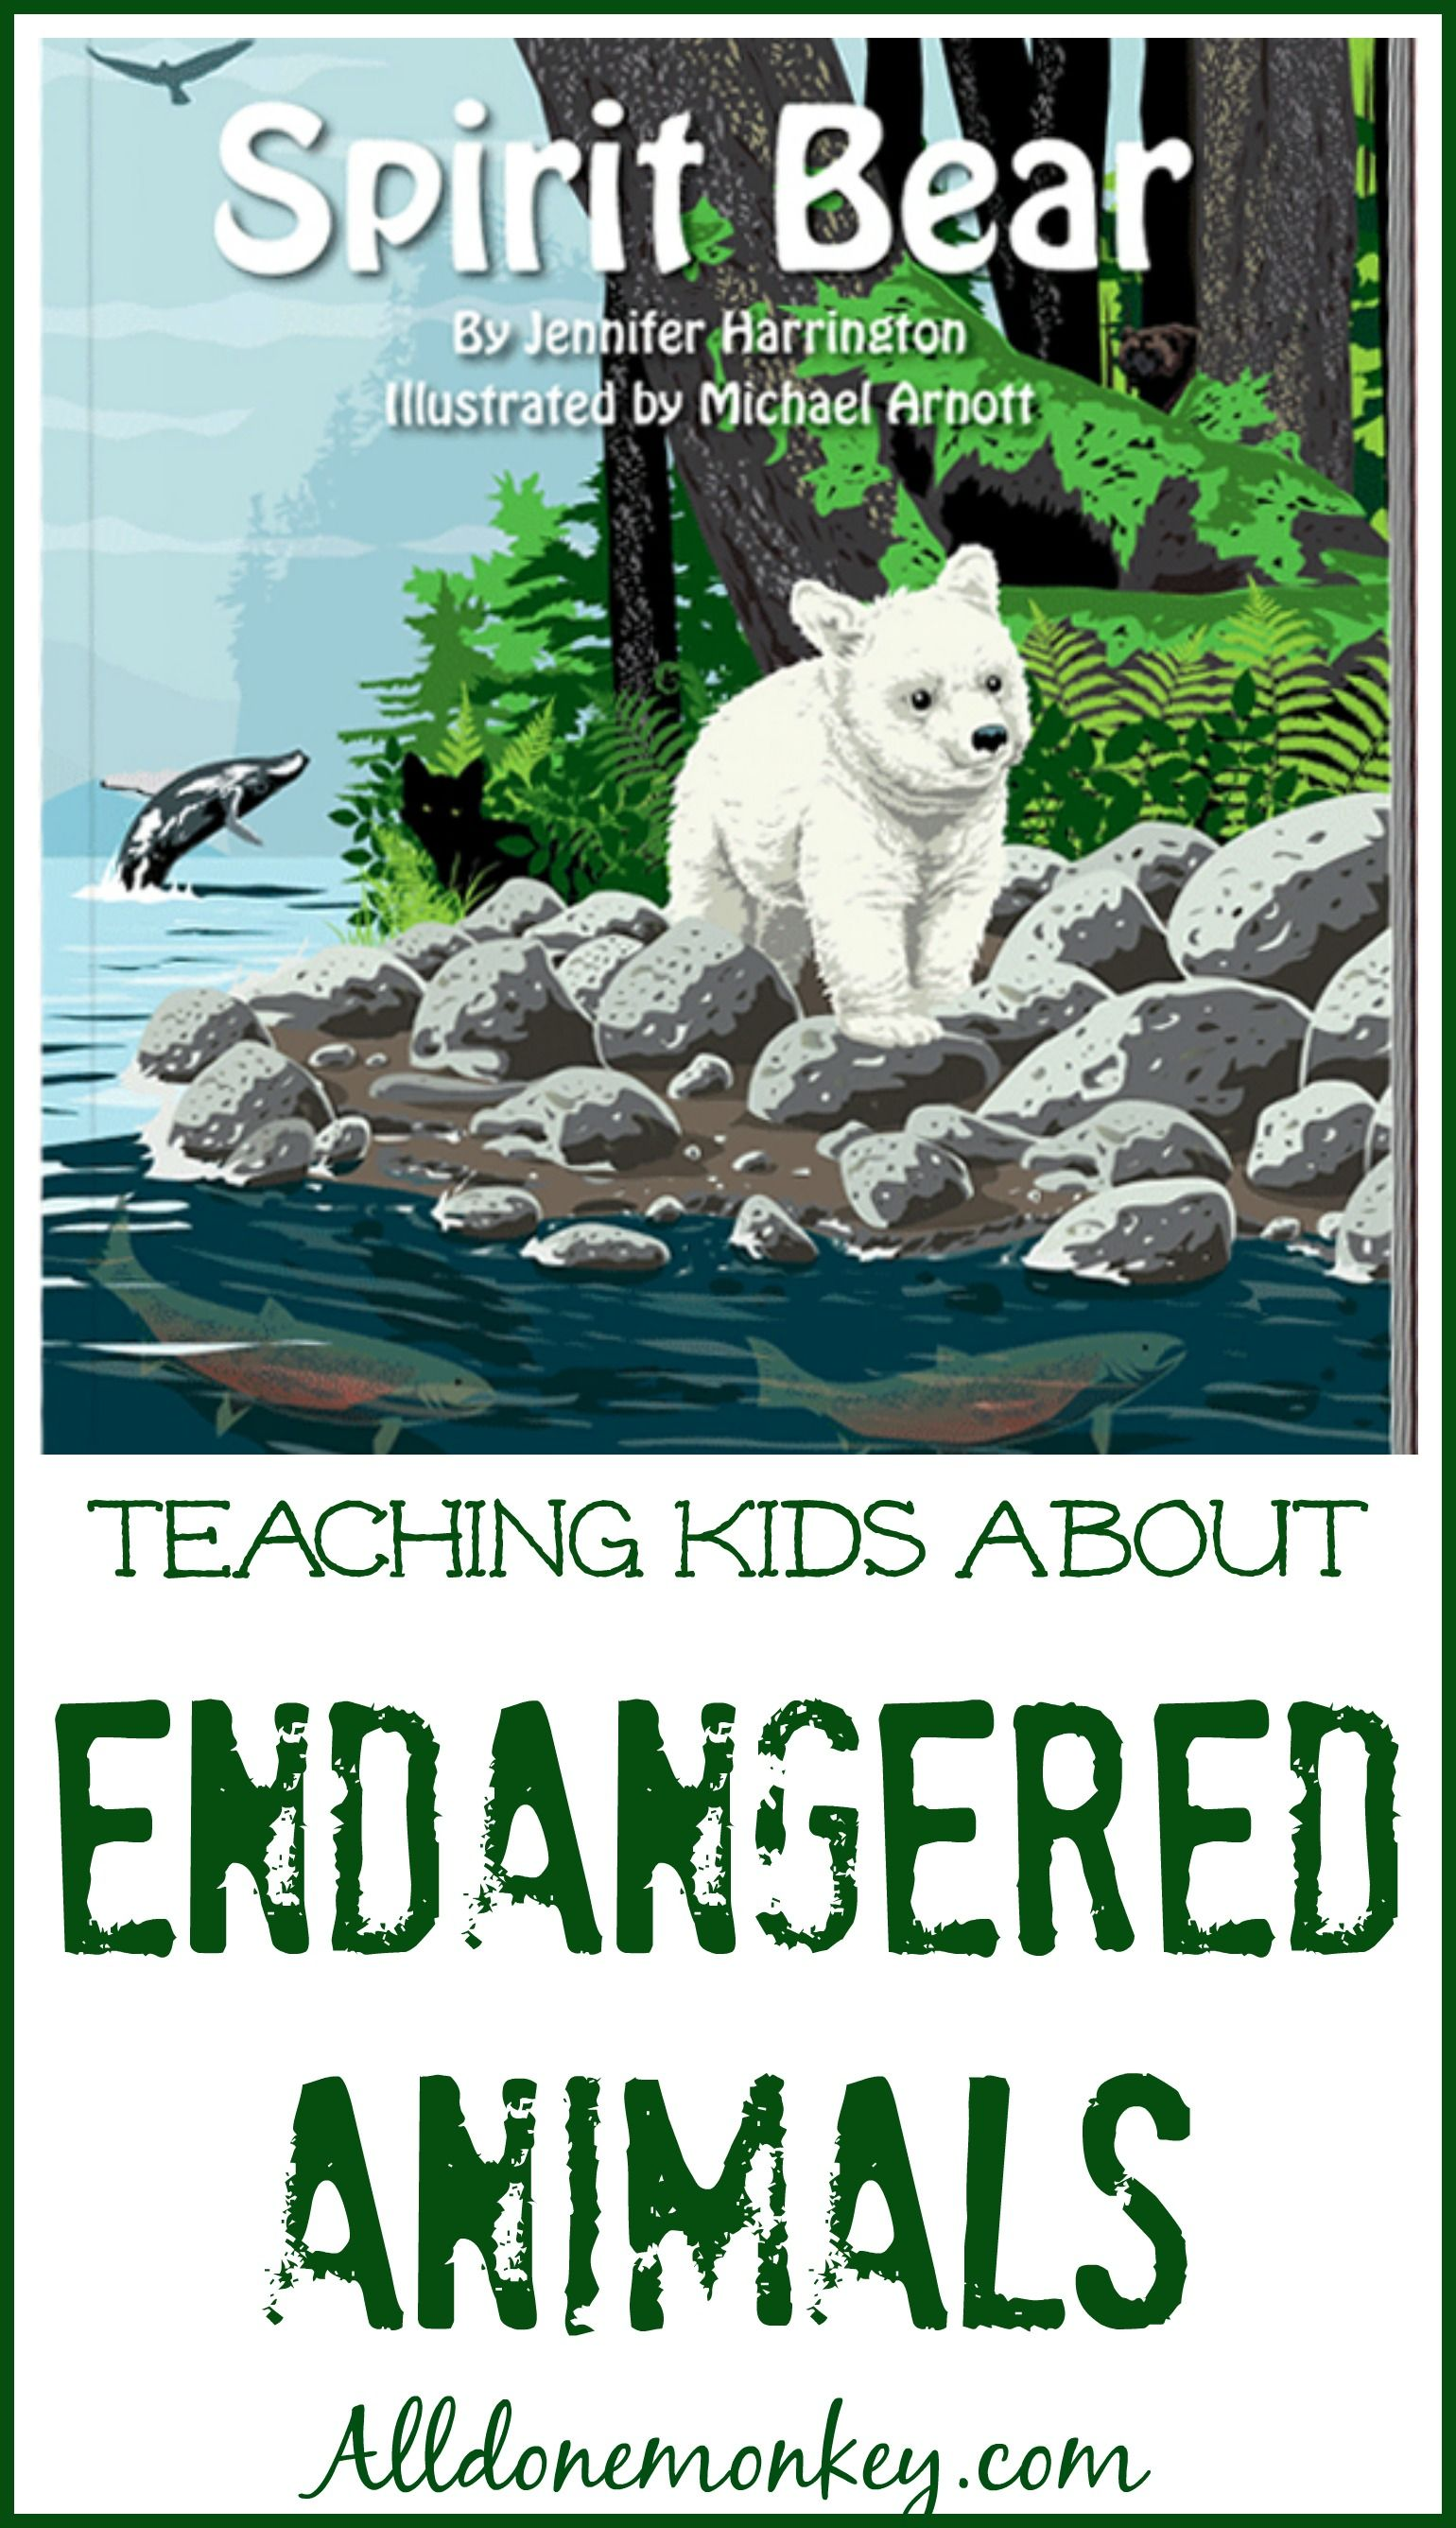 Spirit Bear Teaching Children About Endangered Animals